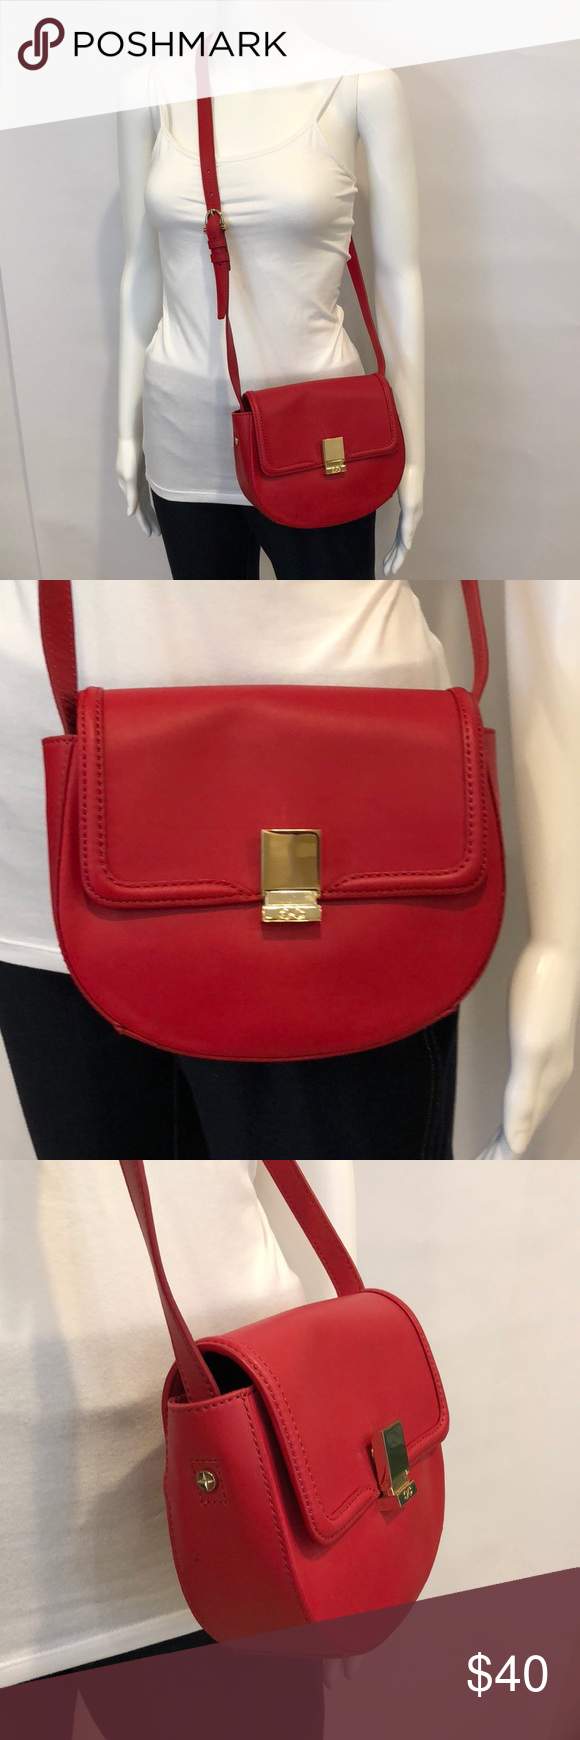 C Wonder Red Leather Crossbody Perfect Bag To Brighten Your Wardrobe Cute Saddle